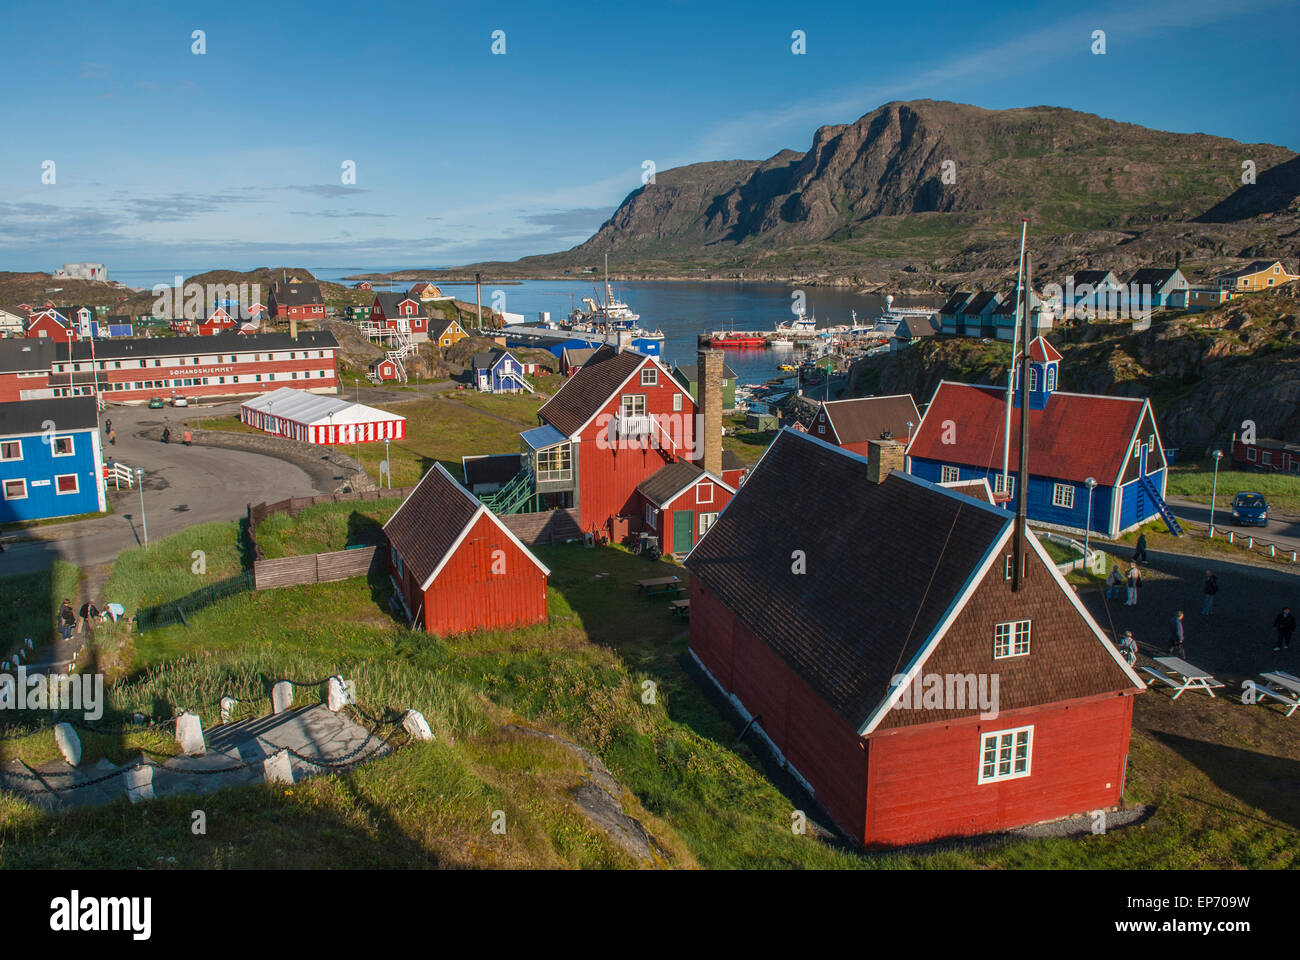 View of Sisimiut museum area and harbour in western Greenland during summer season. Taken gorgeous sunny day Stock Photo